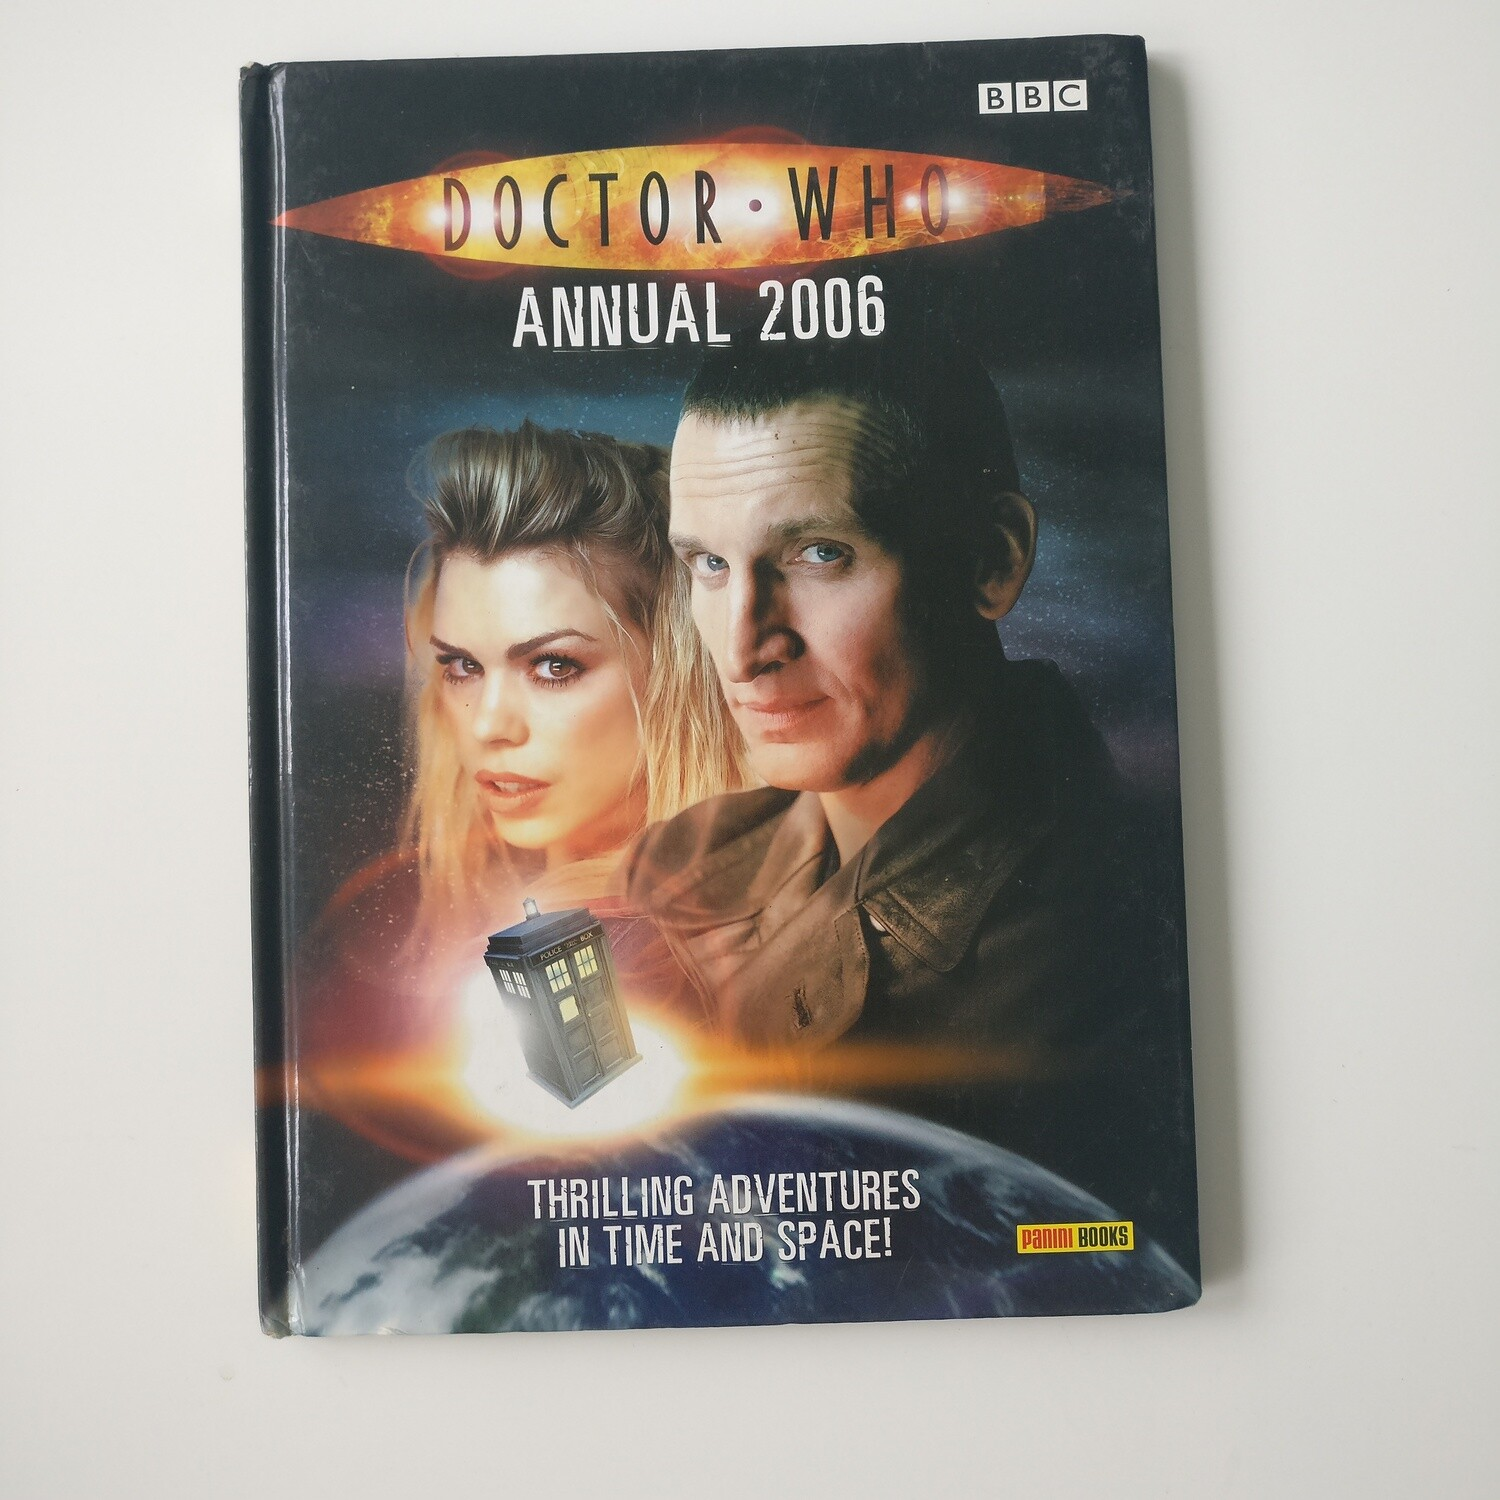 Doctor Who / Dr Who Notebooks - choose from several titles